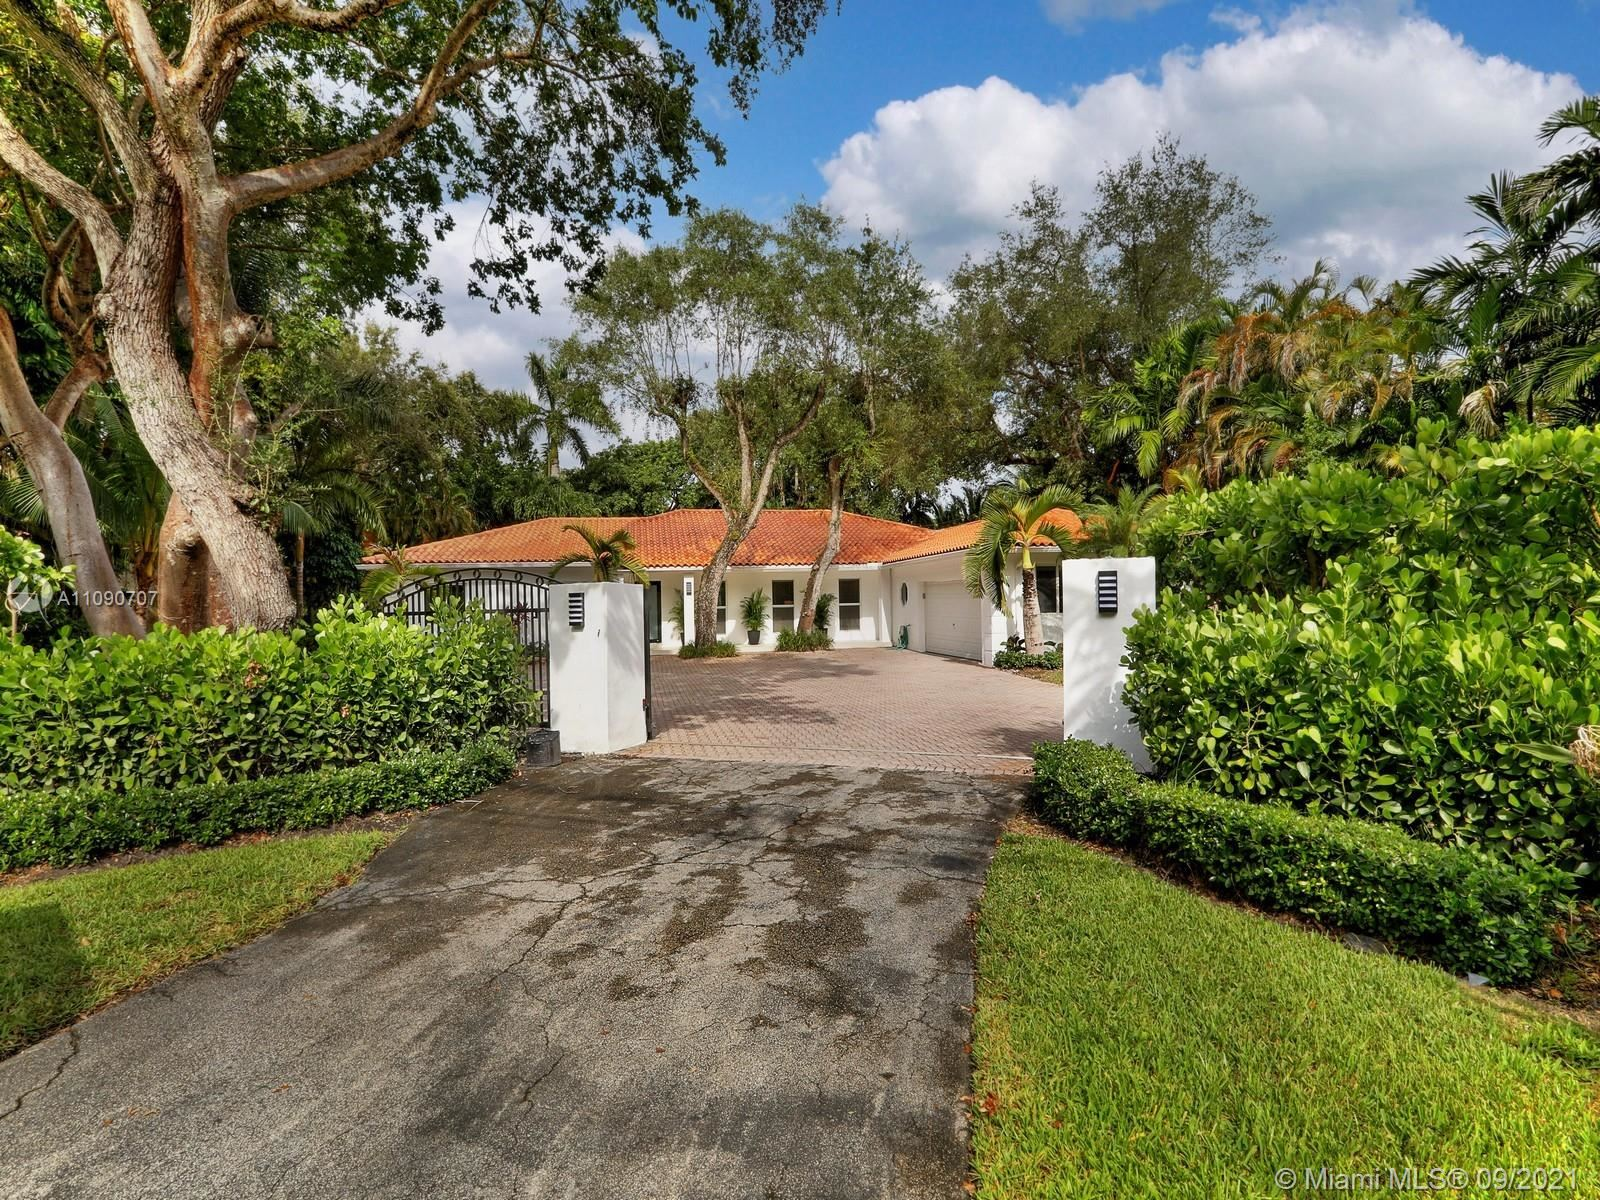 8110 Old Cutler Rd, Coral Gables, FL 33143 - #: A11090707